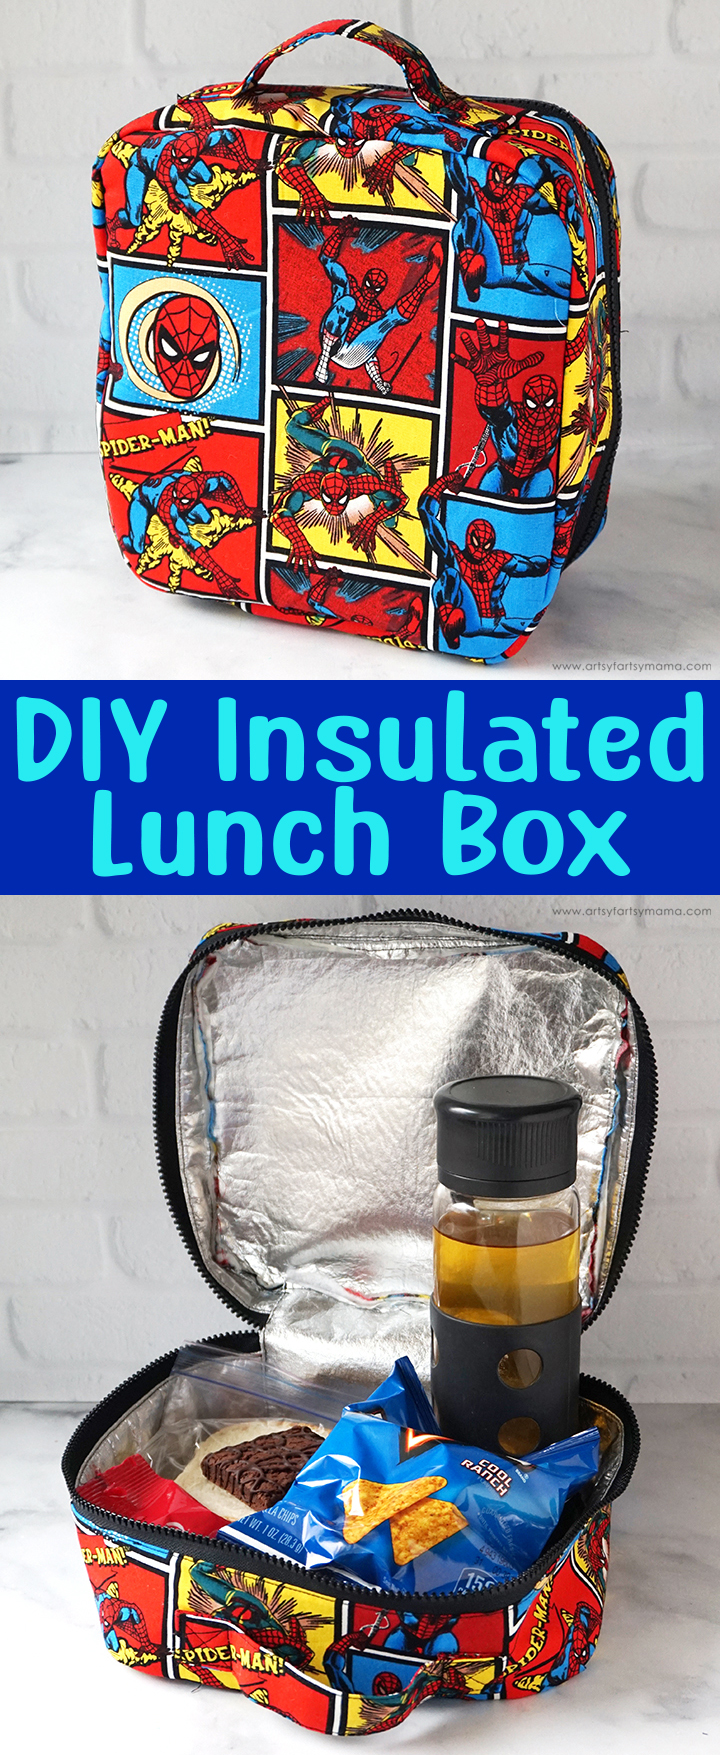 DIY Insulated Lunch Box